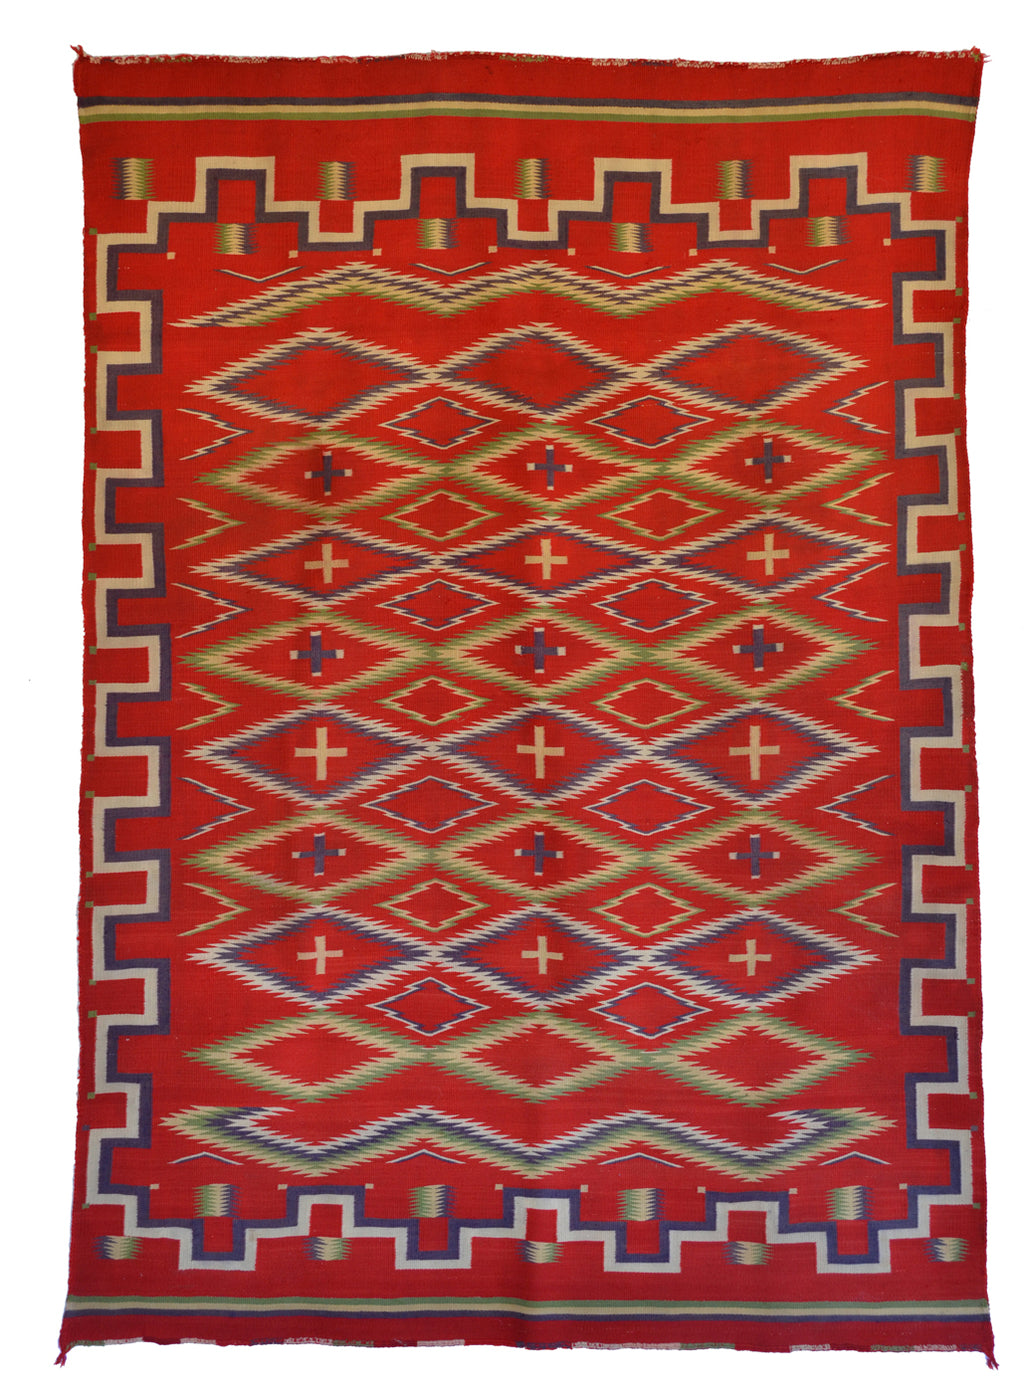 Germantown Navajo Rug : Historic : PC 285 : 54″ x 78″ - Getzwiller's Nizhoni Ranch Gallery